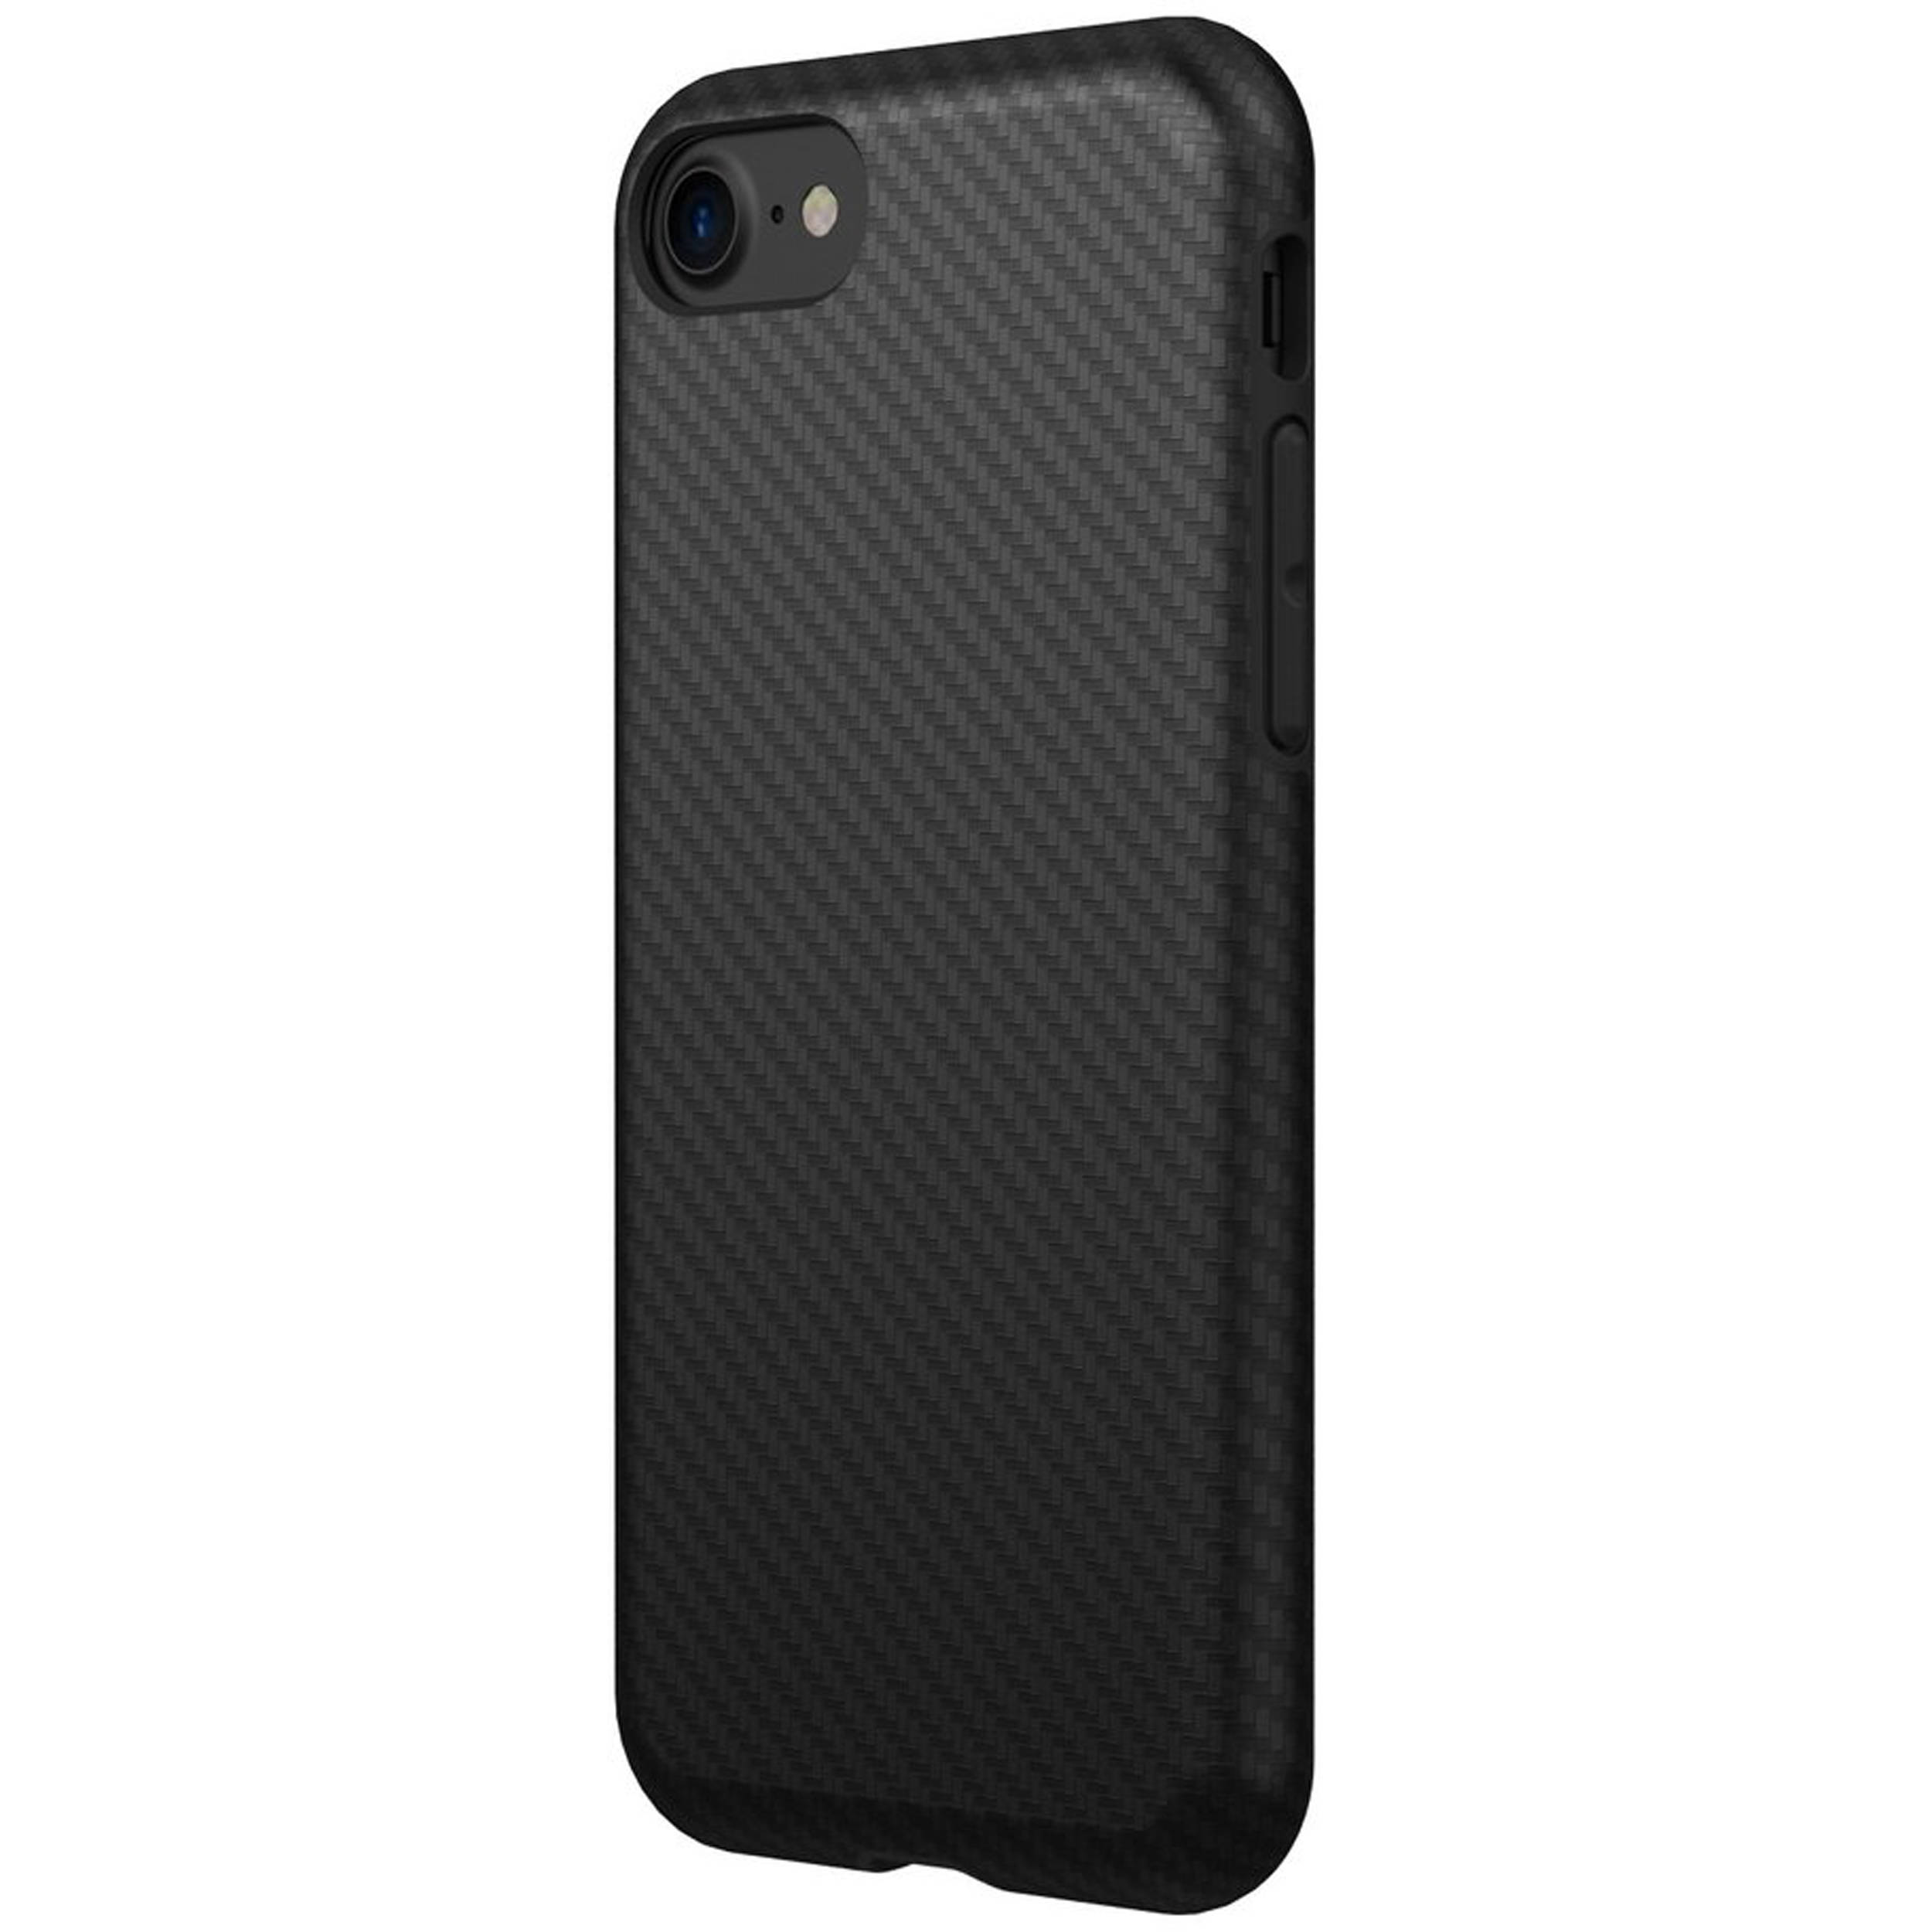 new style 5fc77 27be5 RhinoShield SolidSuit Case for iPhone 7/8 (Carbon Fiber)